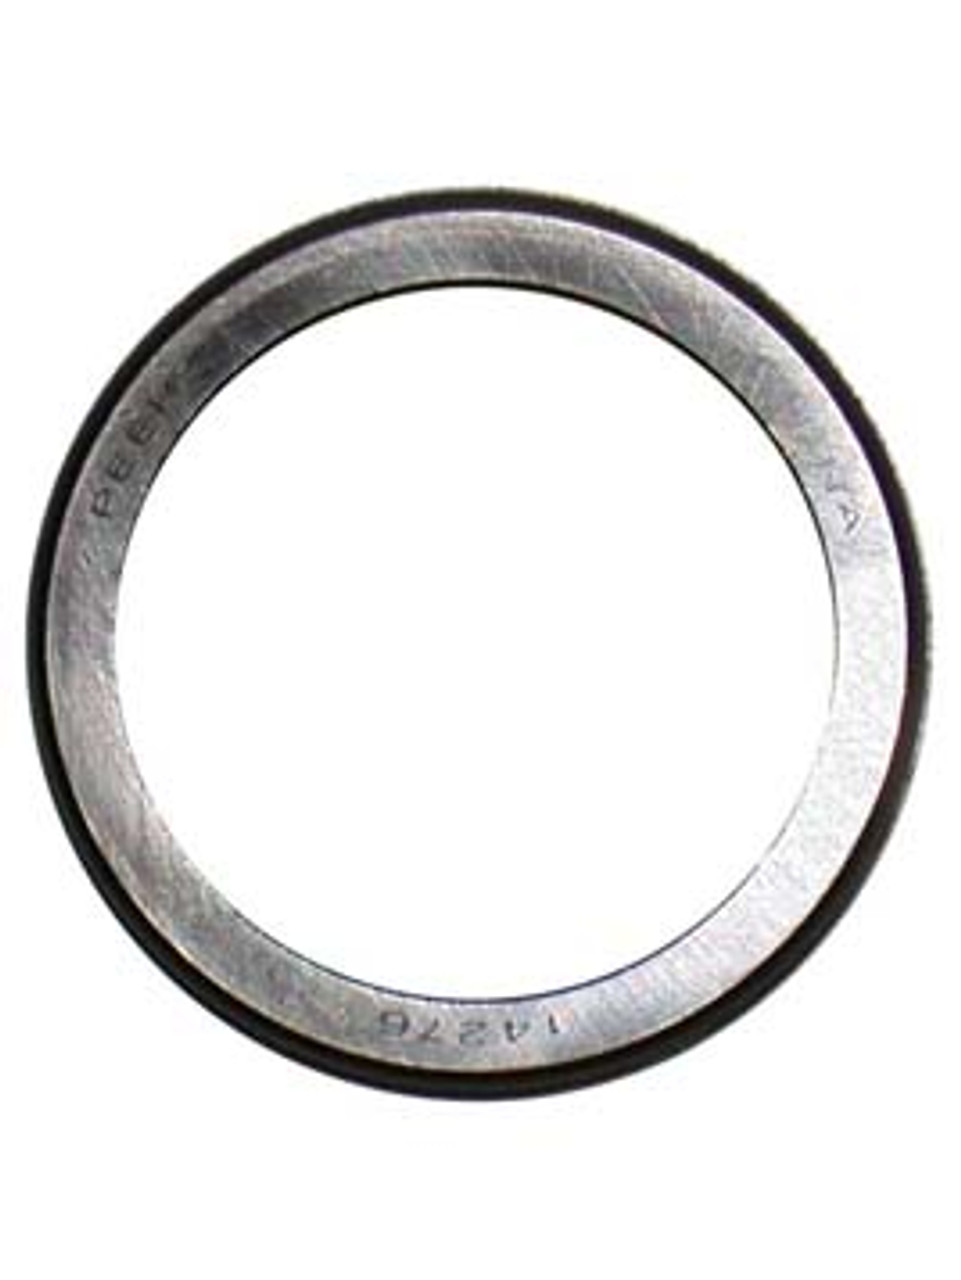 28521 --- Race (Cup) for Bearing # 28580